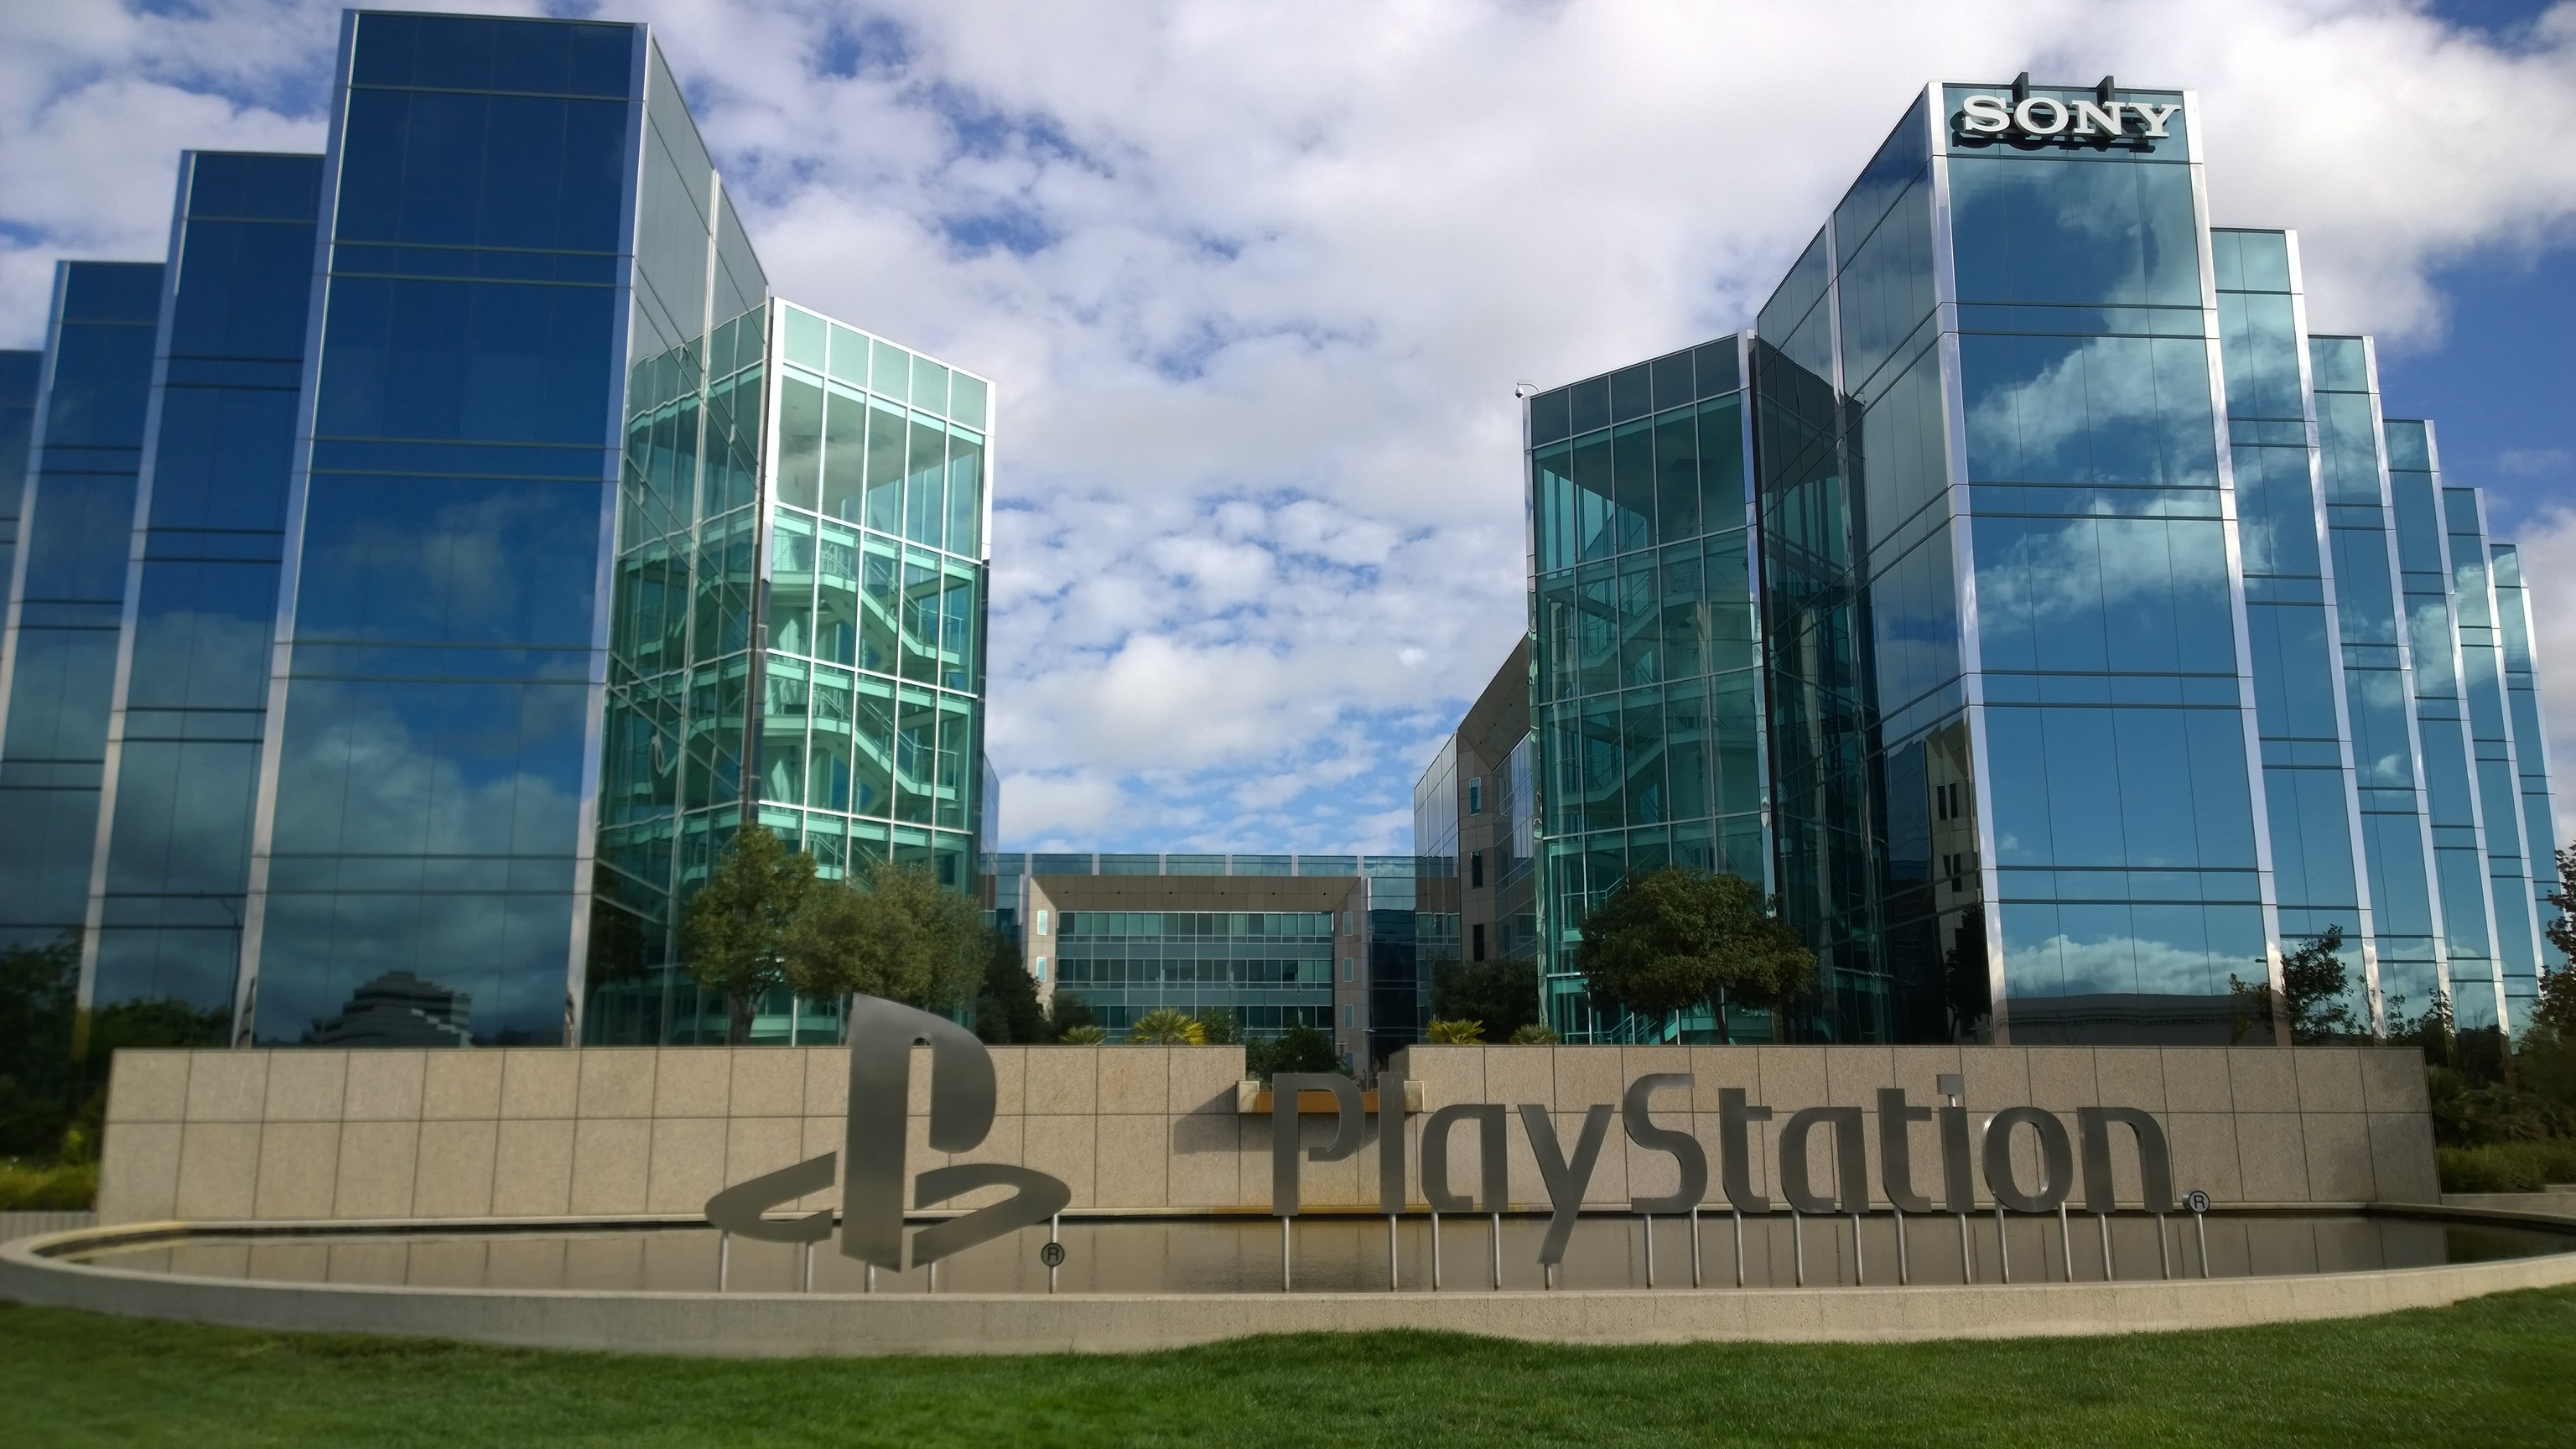 'Dozens' of PlayStation Employees Laid Off in Europe as Sony Continues Company Restructure